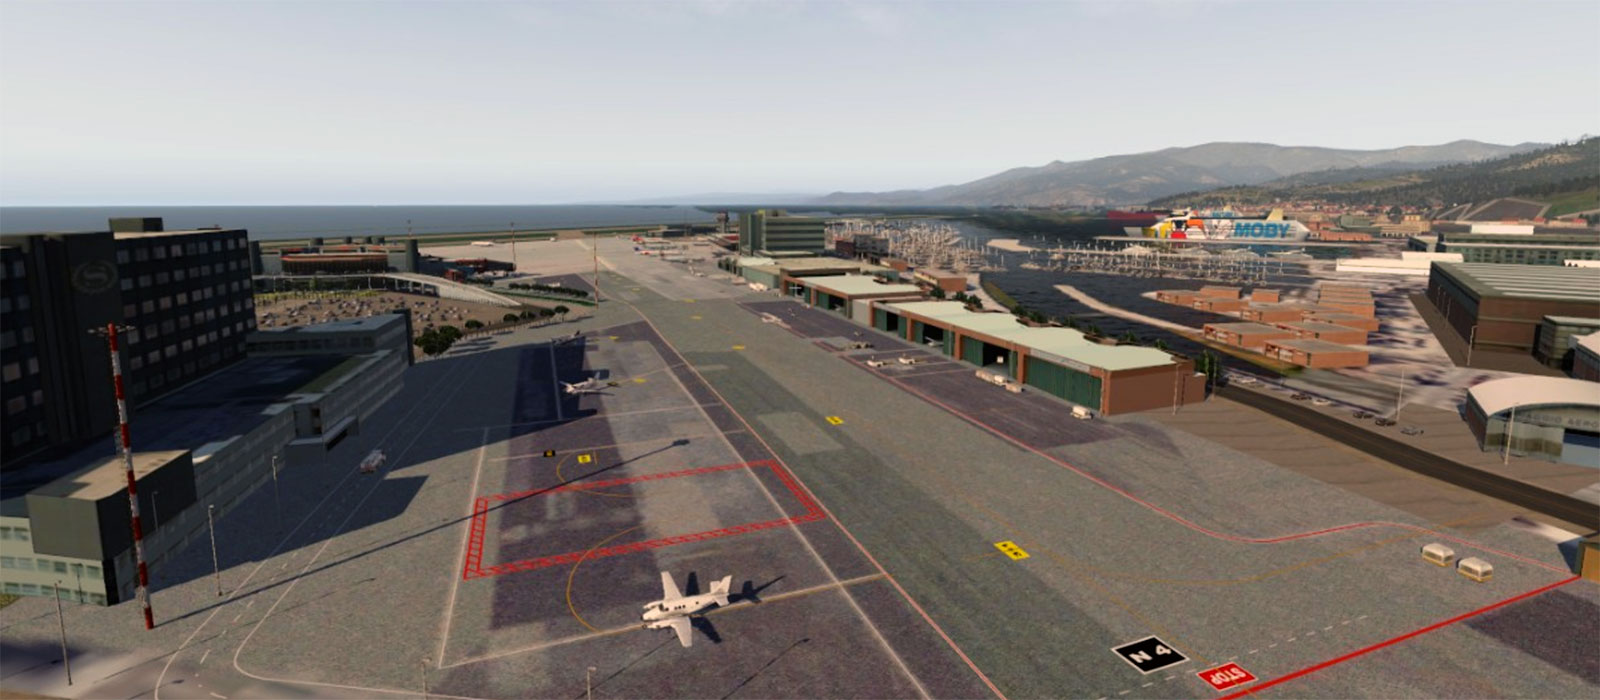 Genova Complete v2 Scenery for X-Plane 11 Released